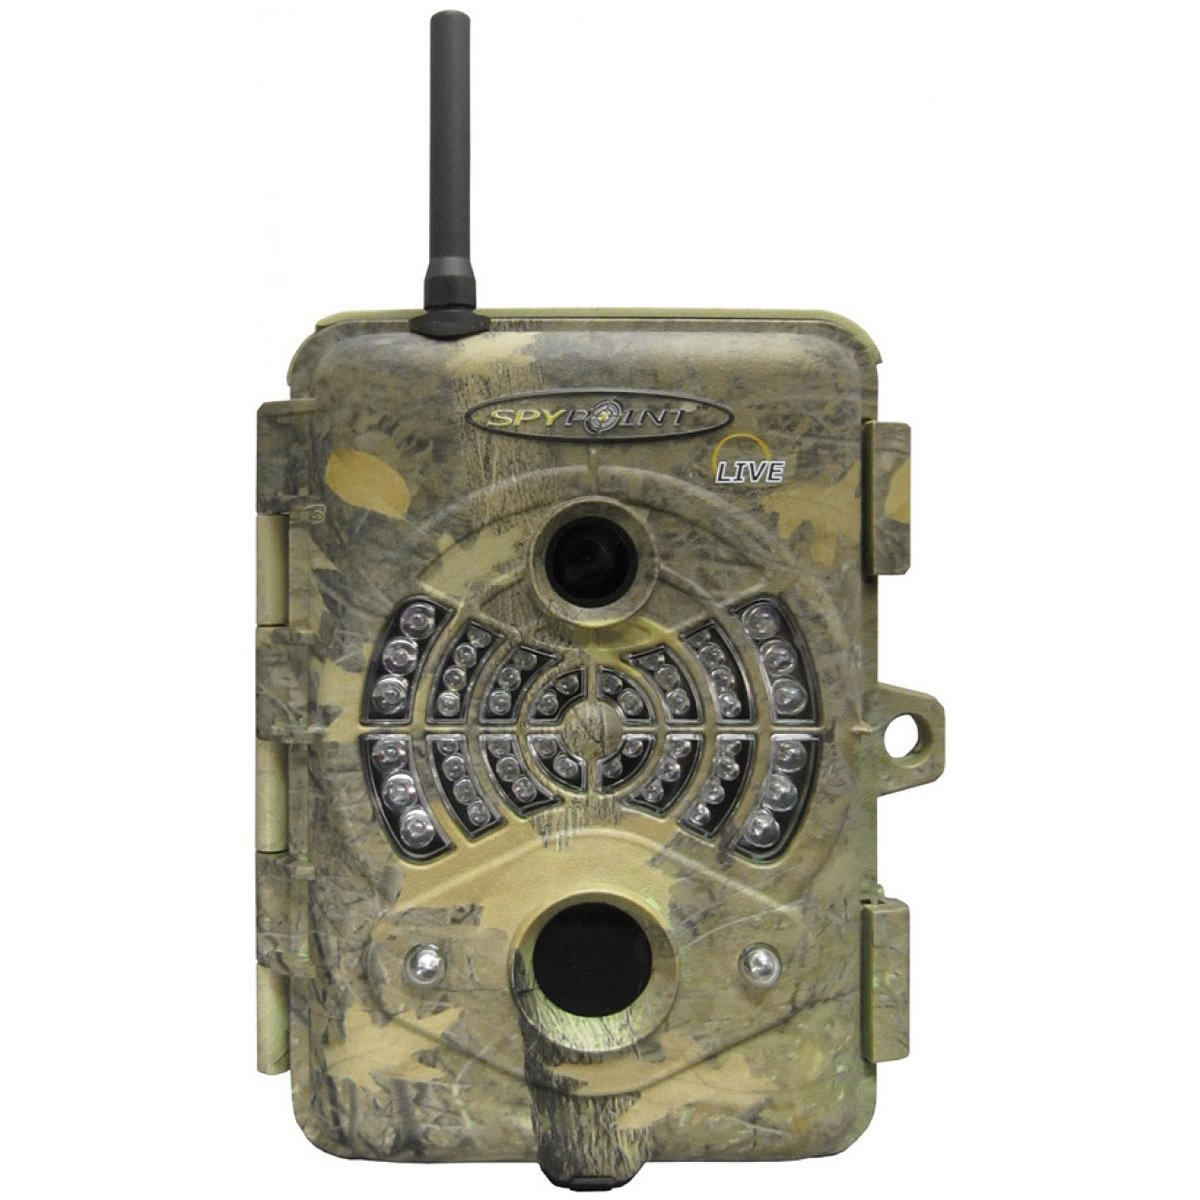 Spypoint 5MP GSM/GPRS Cellular Photo Transmission Camera, Camo by Spypoint